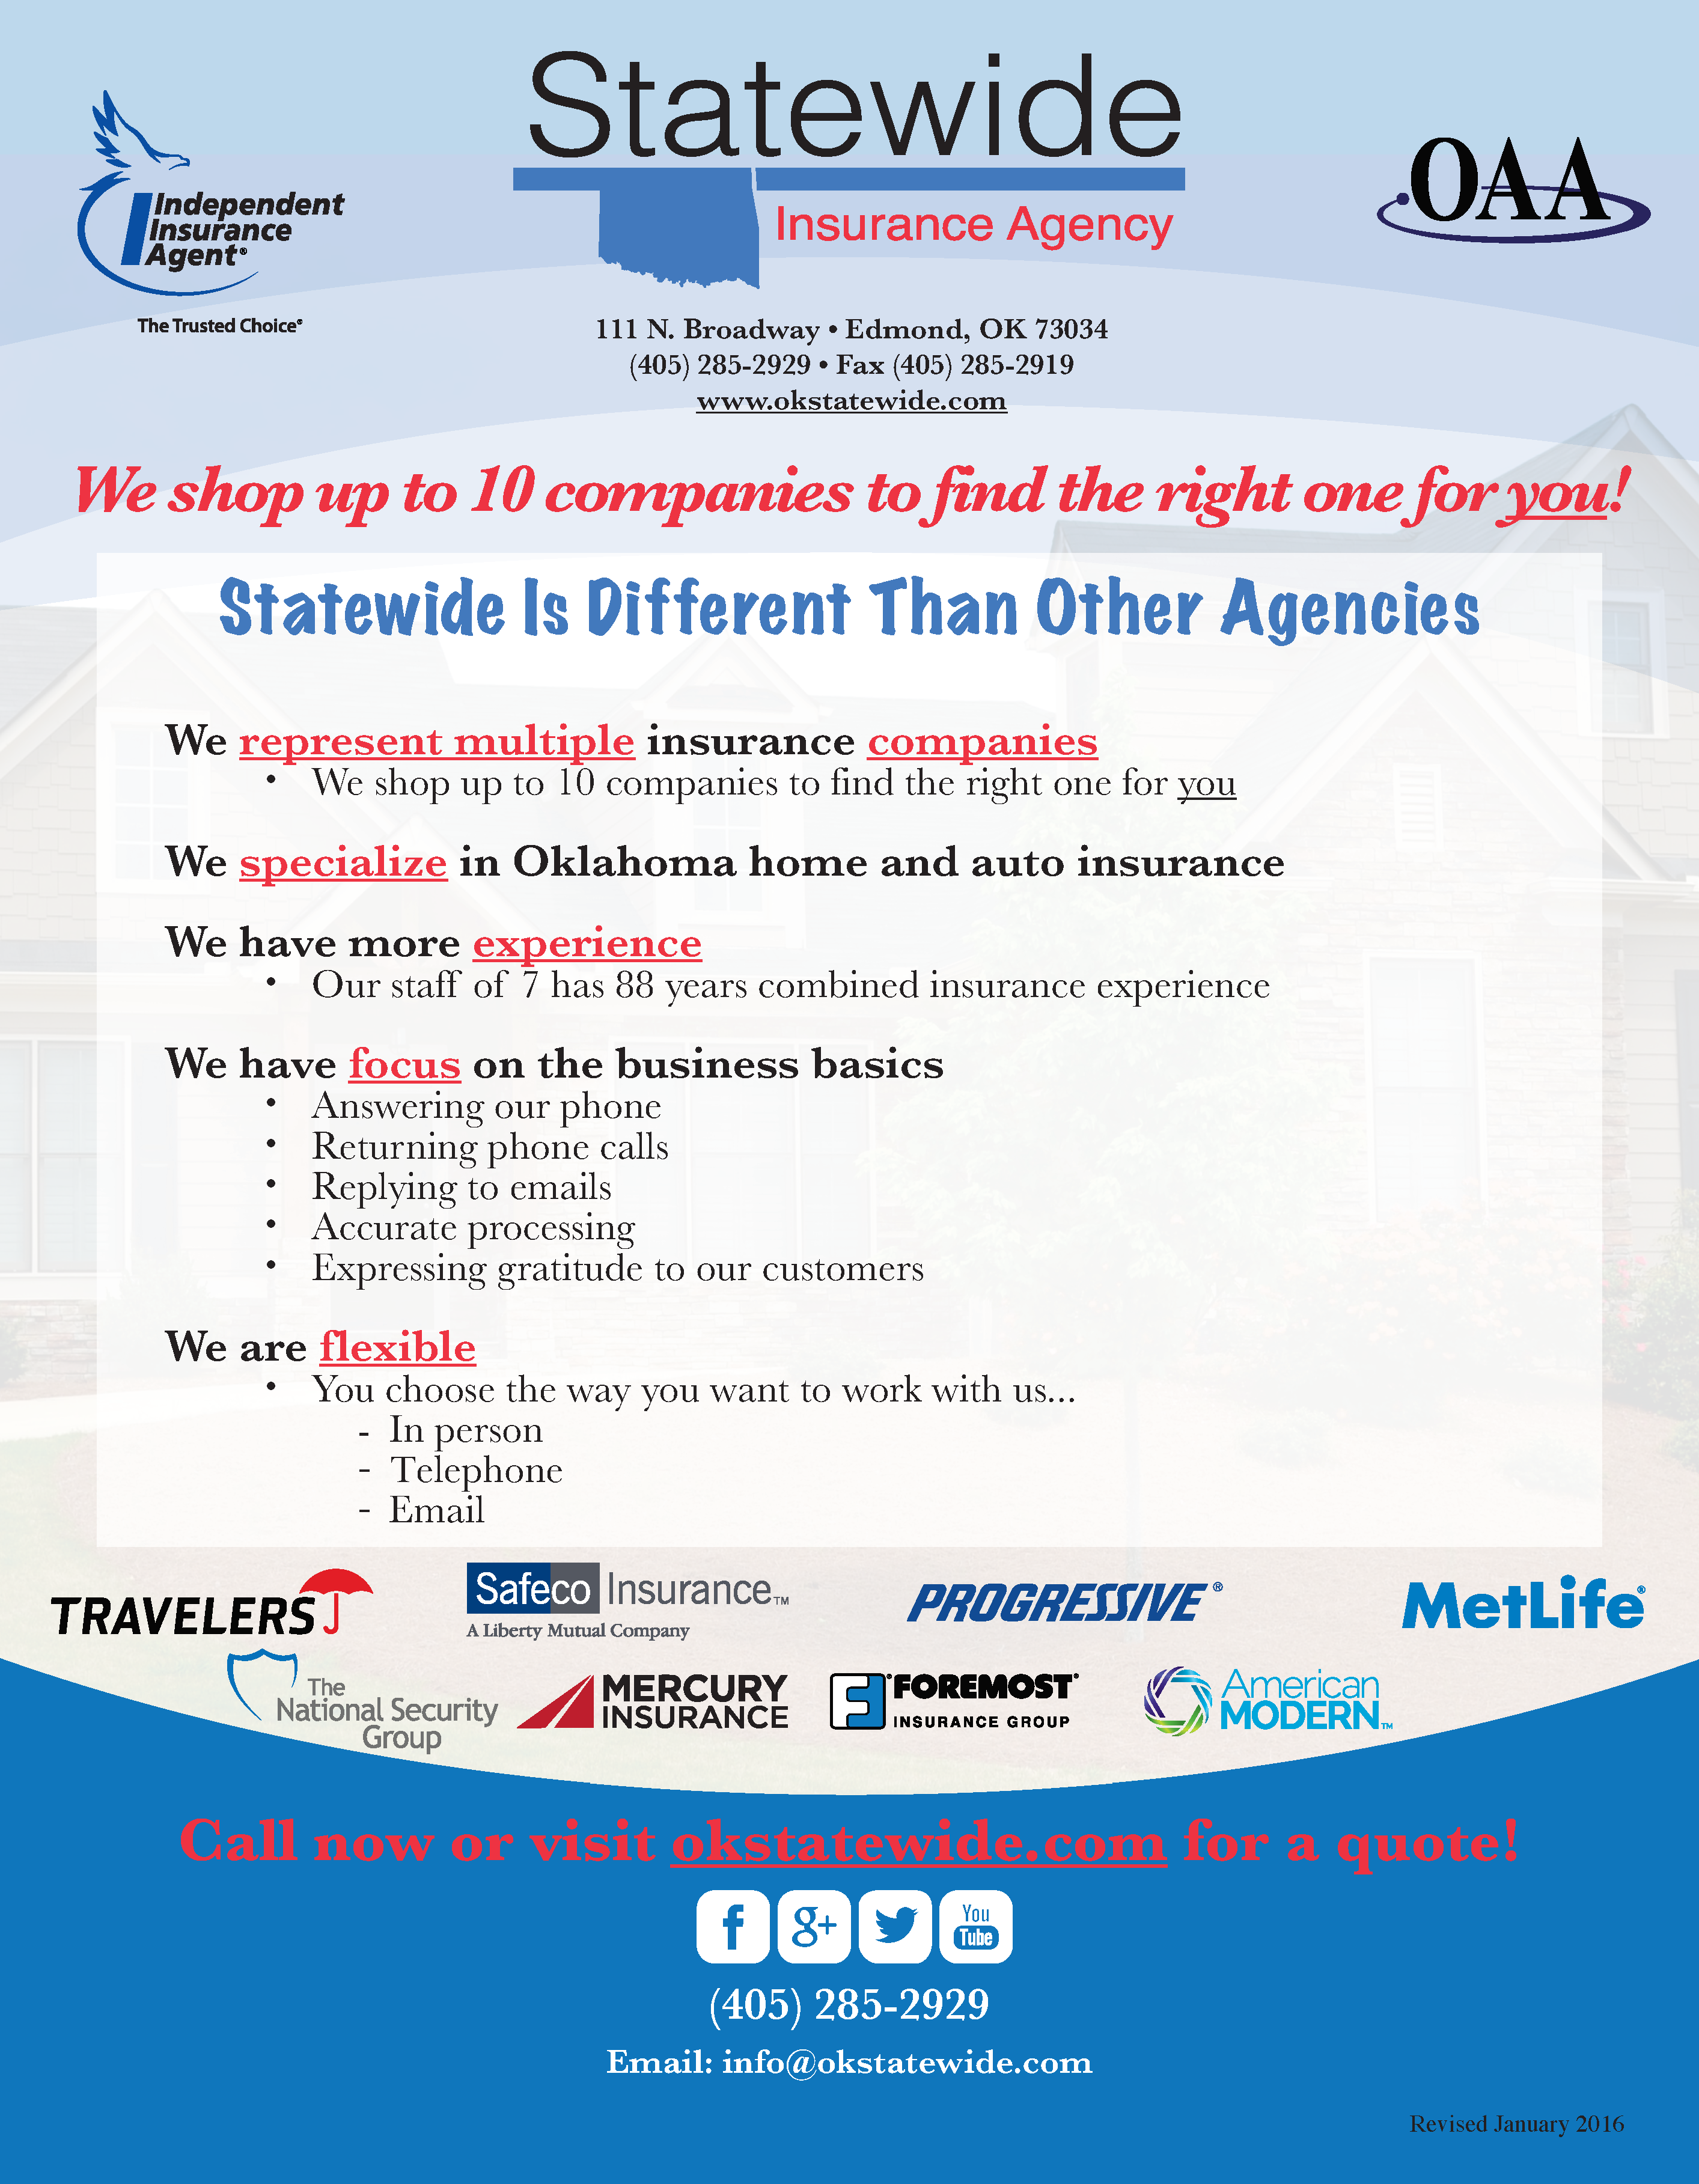 Statewide Home Insurance Flyer 2016 | Travelers | Safeco Insurance / A Liberty Mutual Company | Progressive | MetLife | The National Security Group | Mercury Insurance | Foremost Insurance Group | American Modern